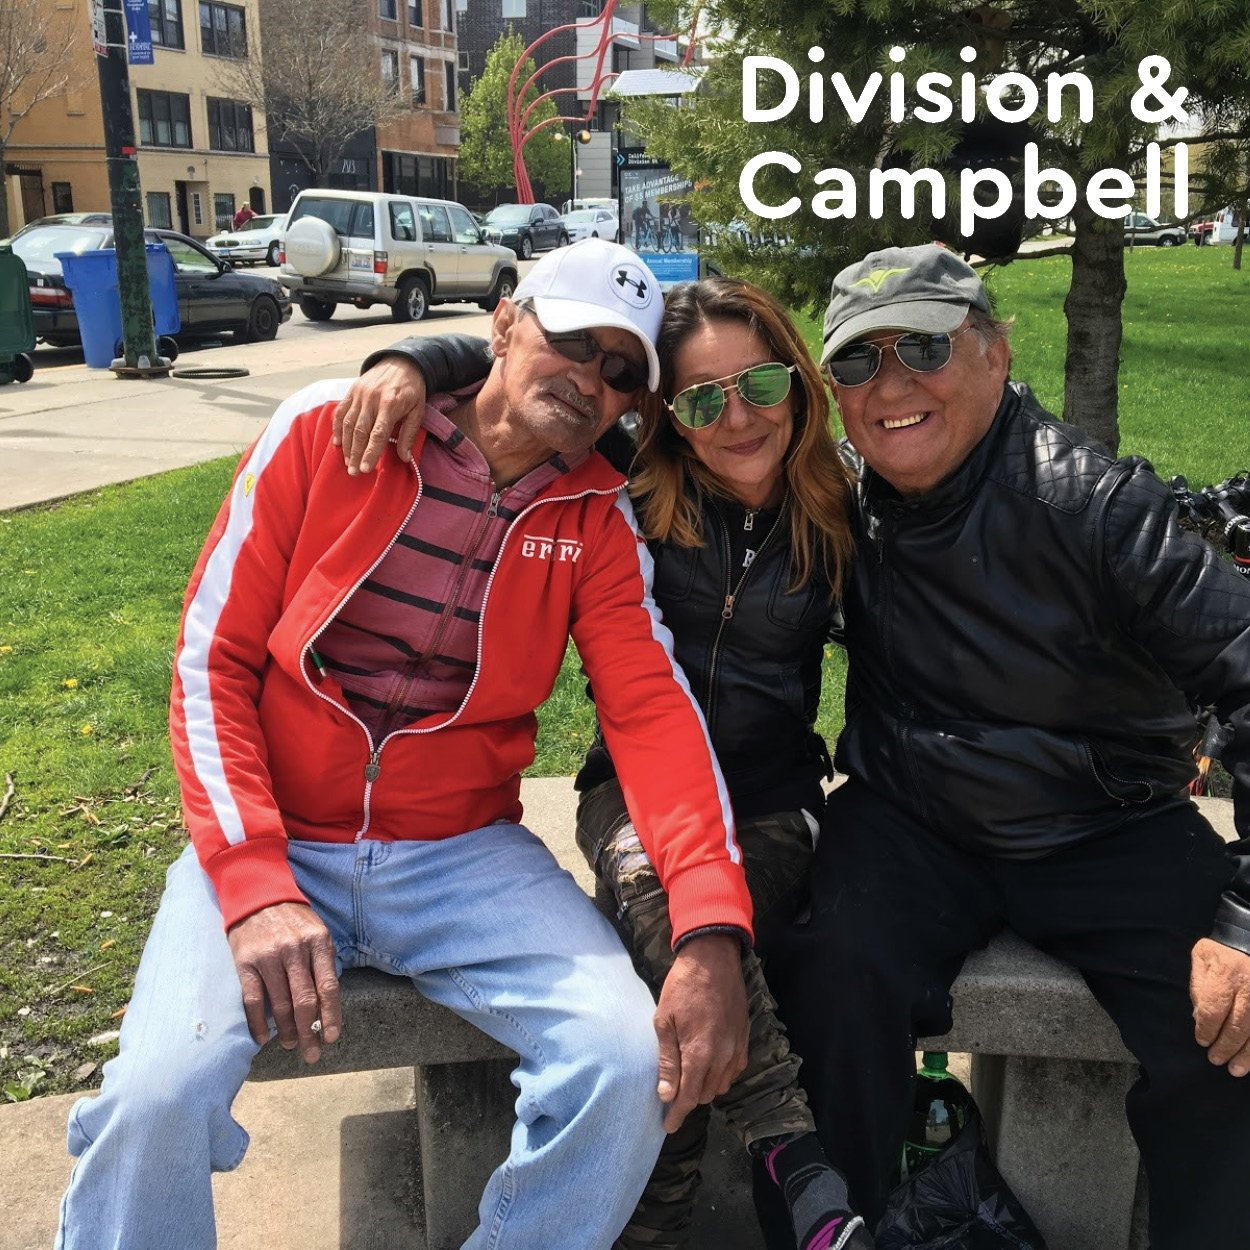 Division & Campbell